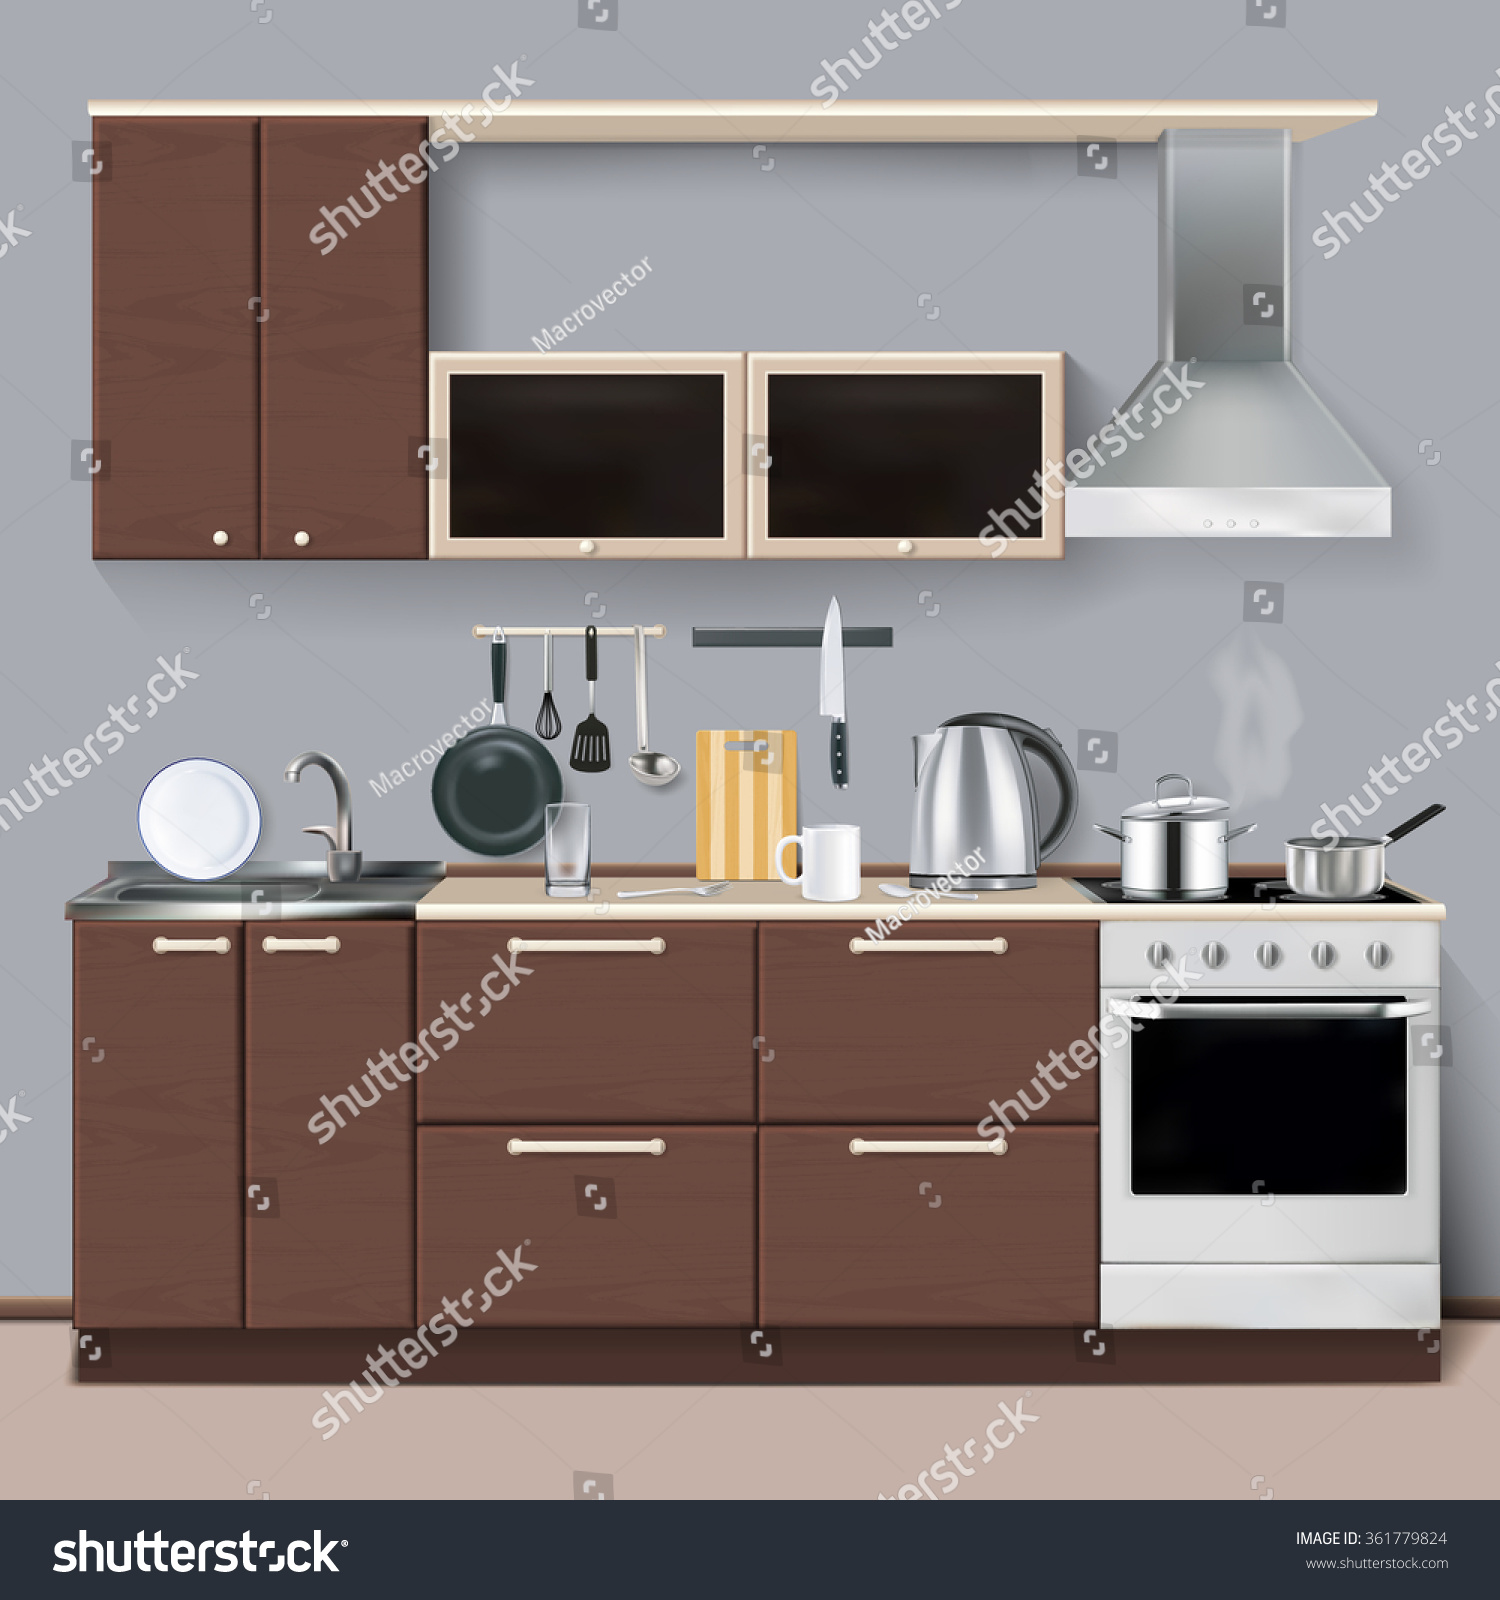 Modern Kitchen Interior Realistic Style Cabinets Stock Vector 361779824 Shutterstock